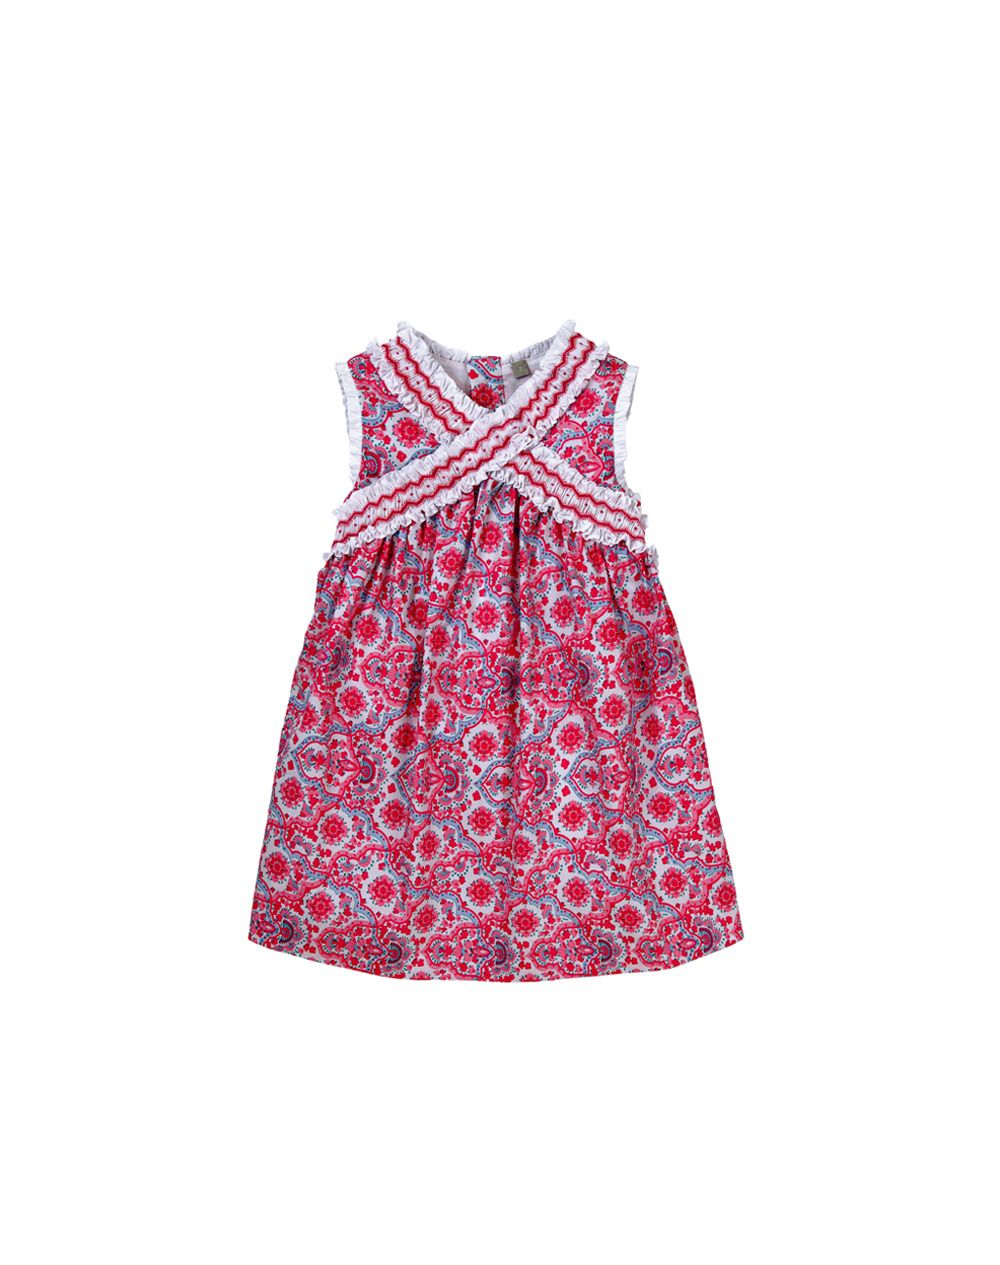 Tizzas Girl Dresses - Girls - Dresses - El Corte Ingles - Fashion ...